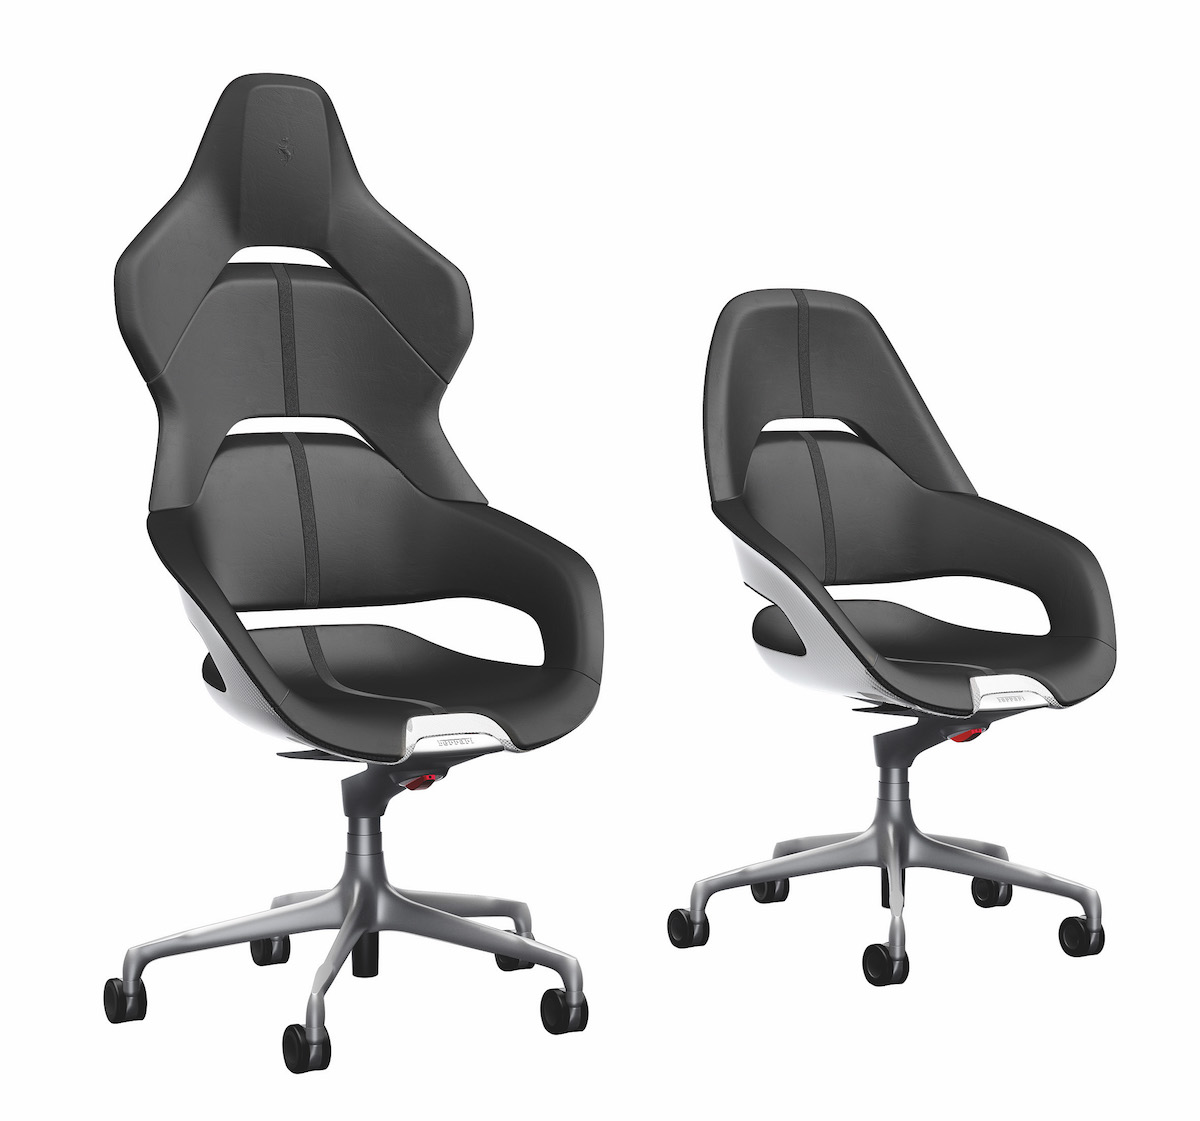 ferrari poltrona-frau new office chair furniture chairs office-chairs racing versions tailor-made colours